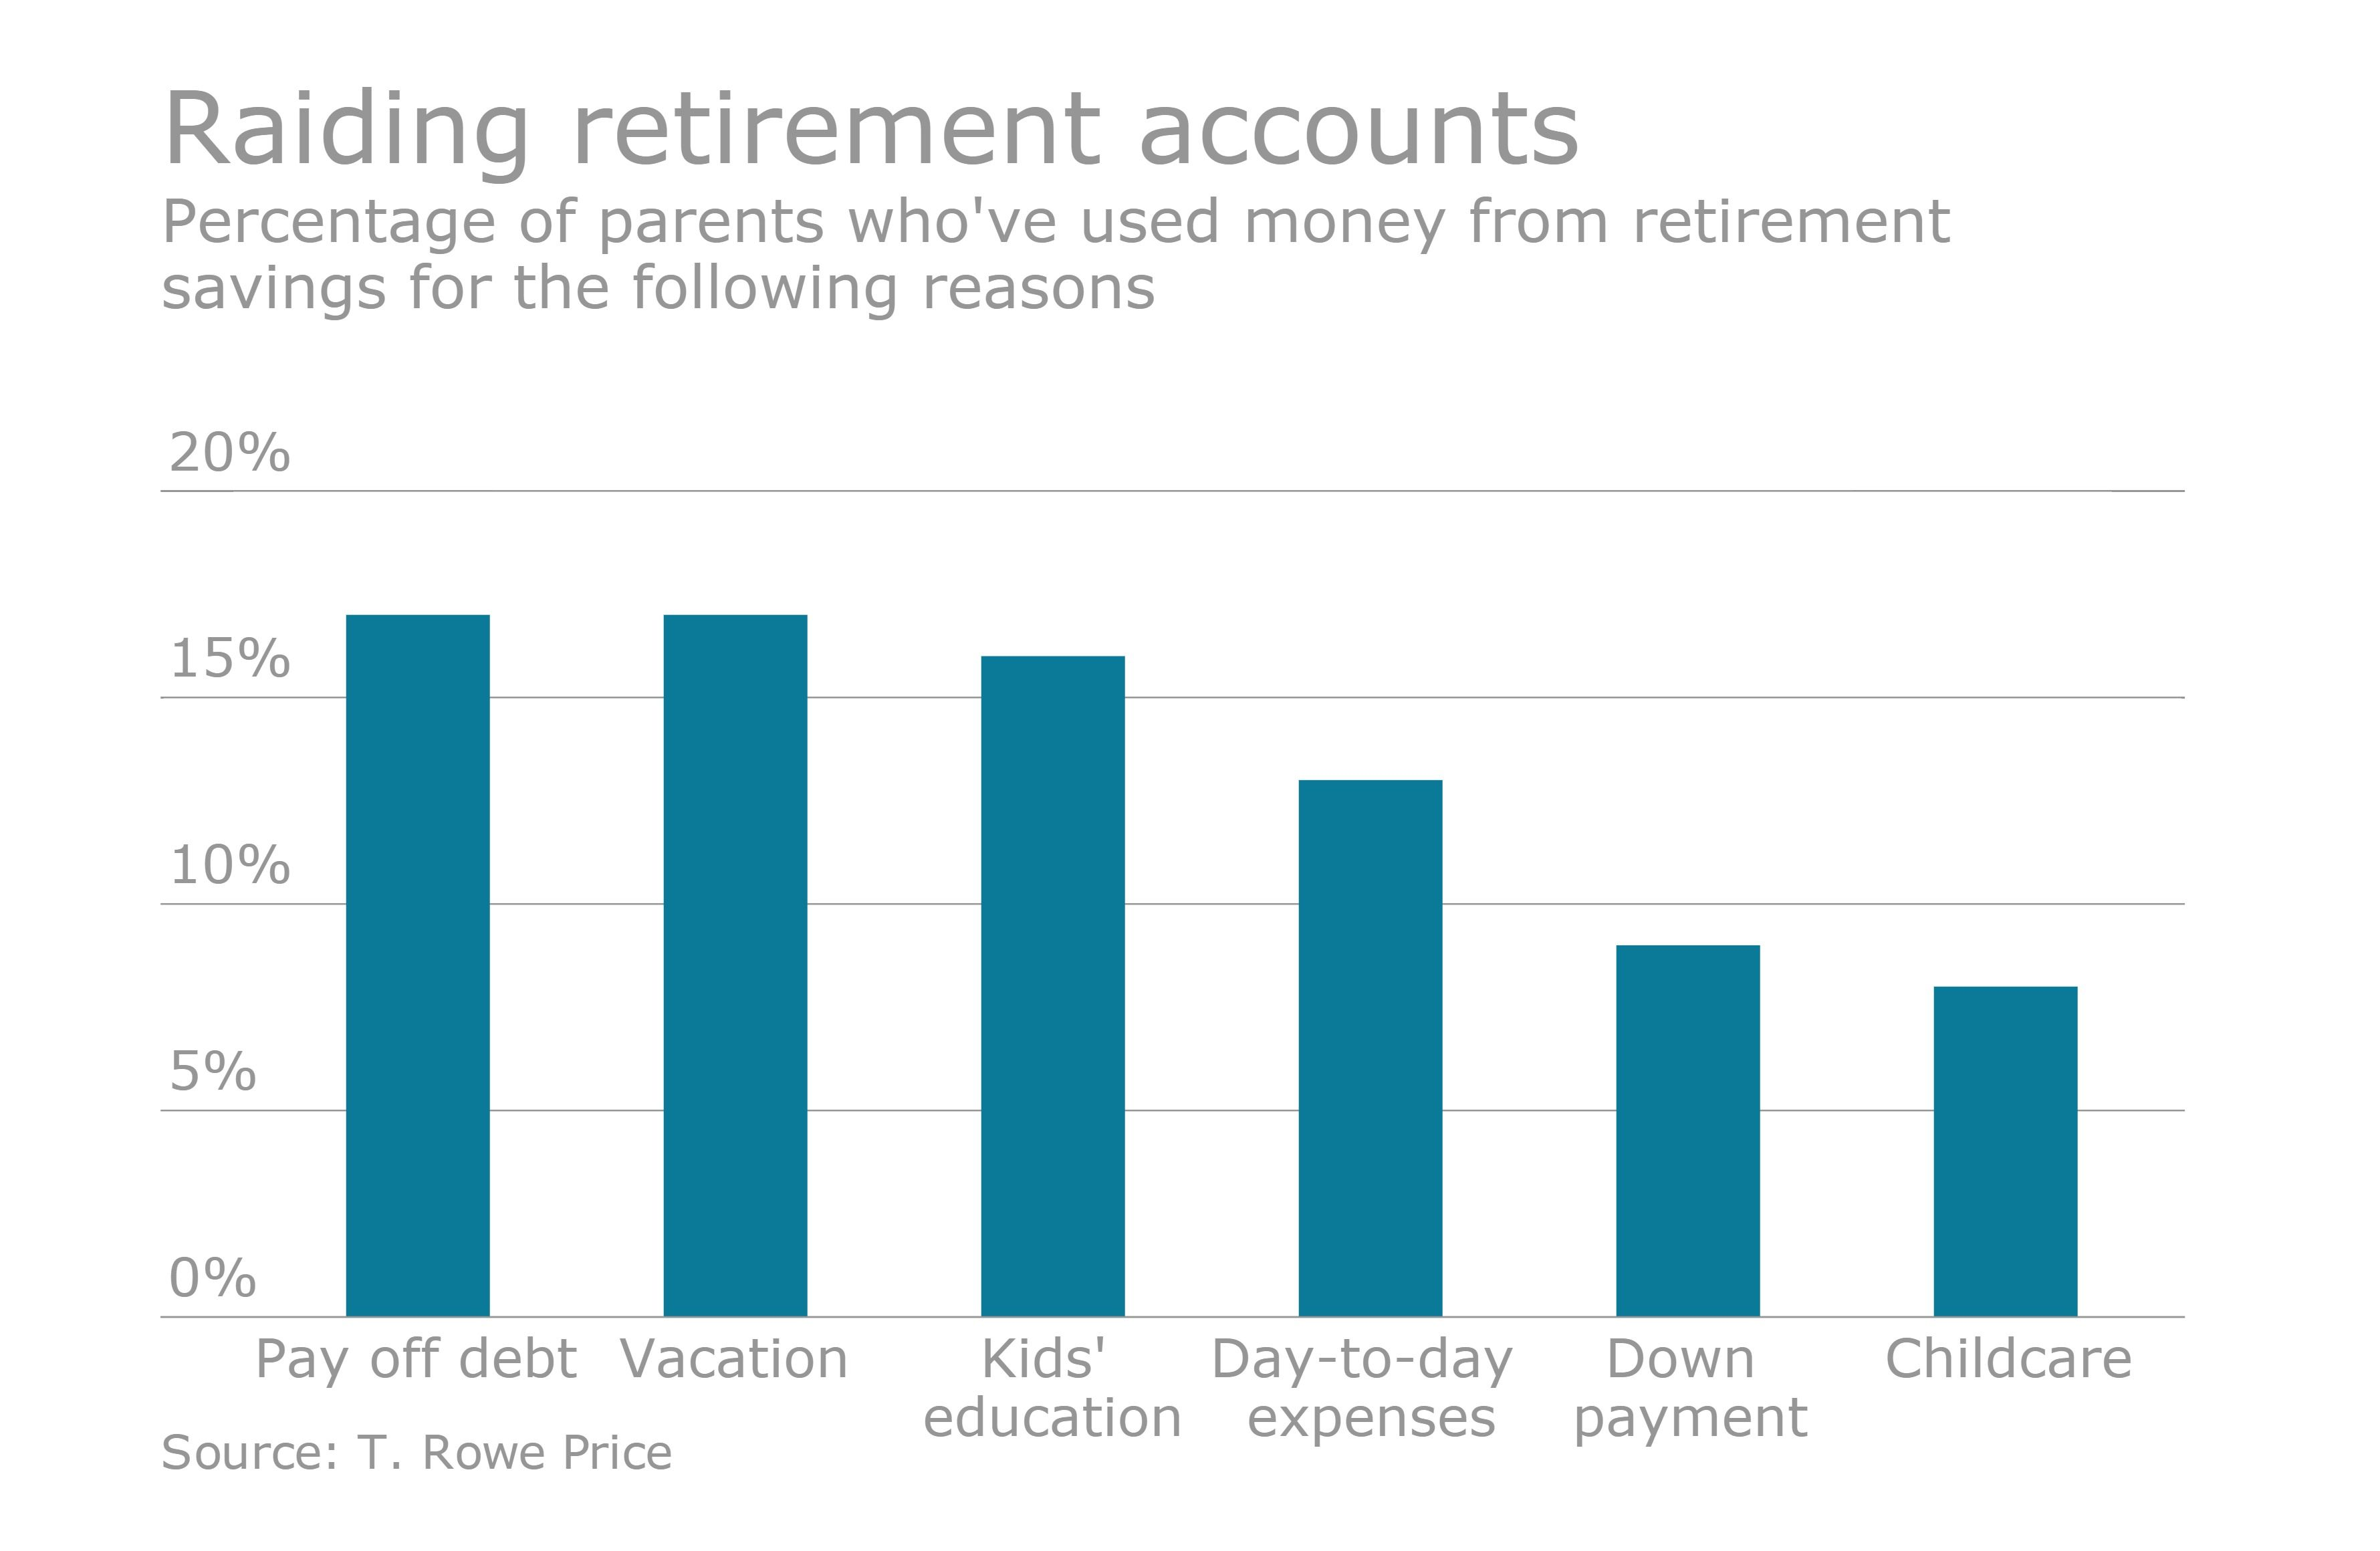 More workers using retirement accounts for nonemergency